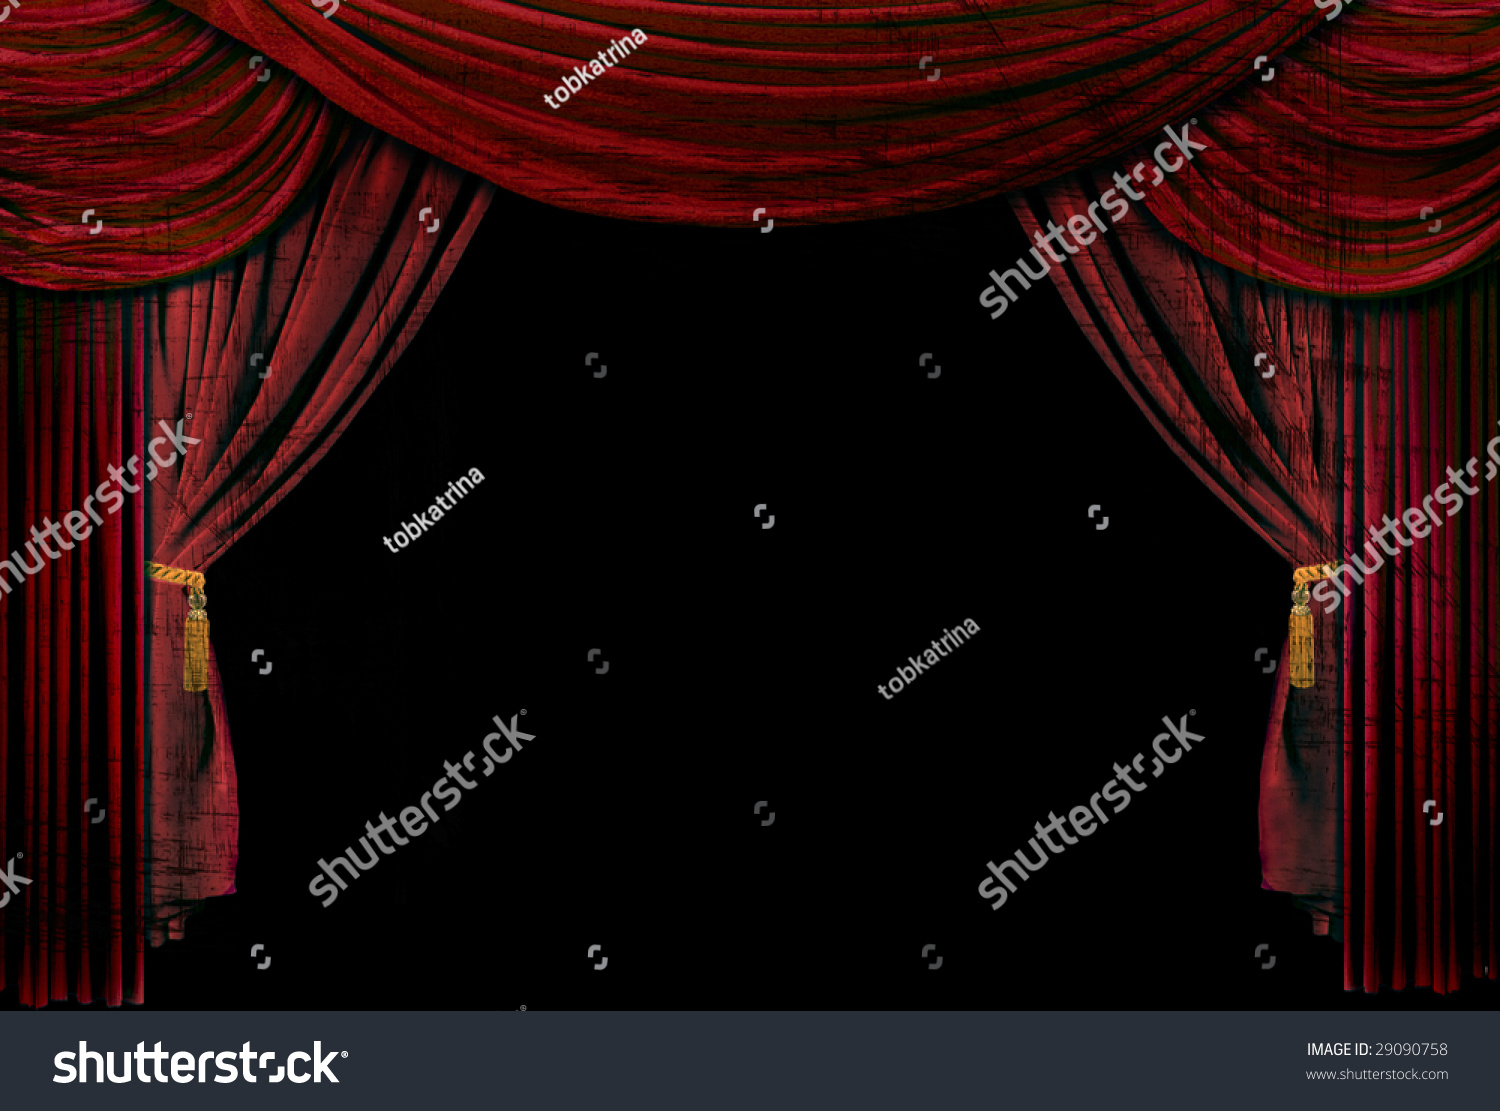 Stock photo dramatic red old fashioned elegant theater stage stock - Old Fashioned Elegant Theater Stage With Velvet Curtains